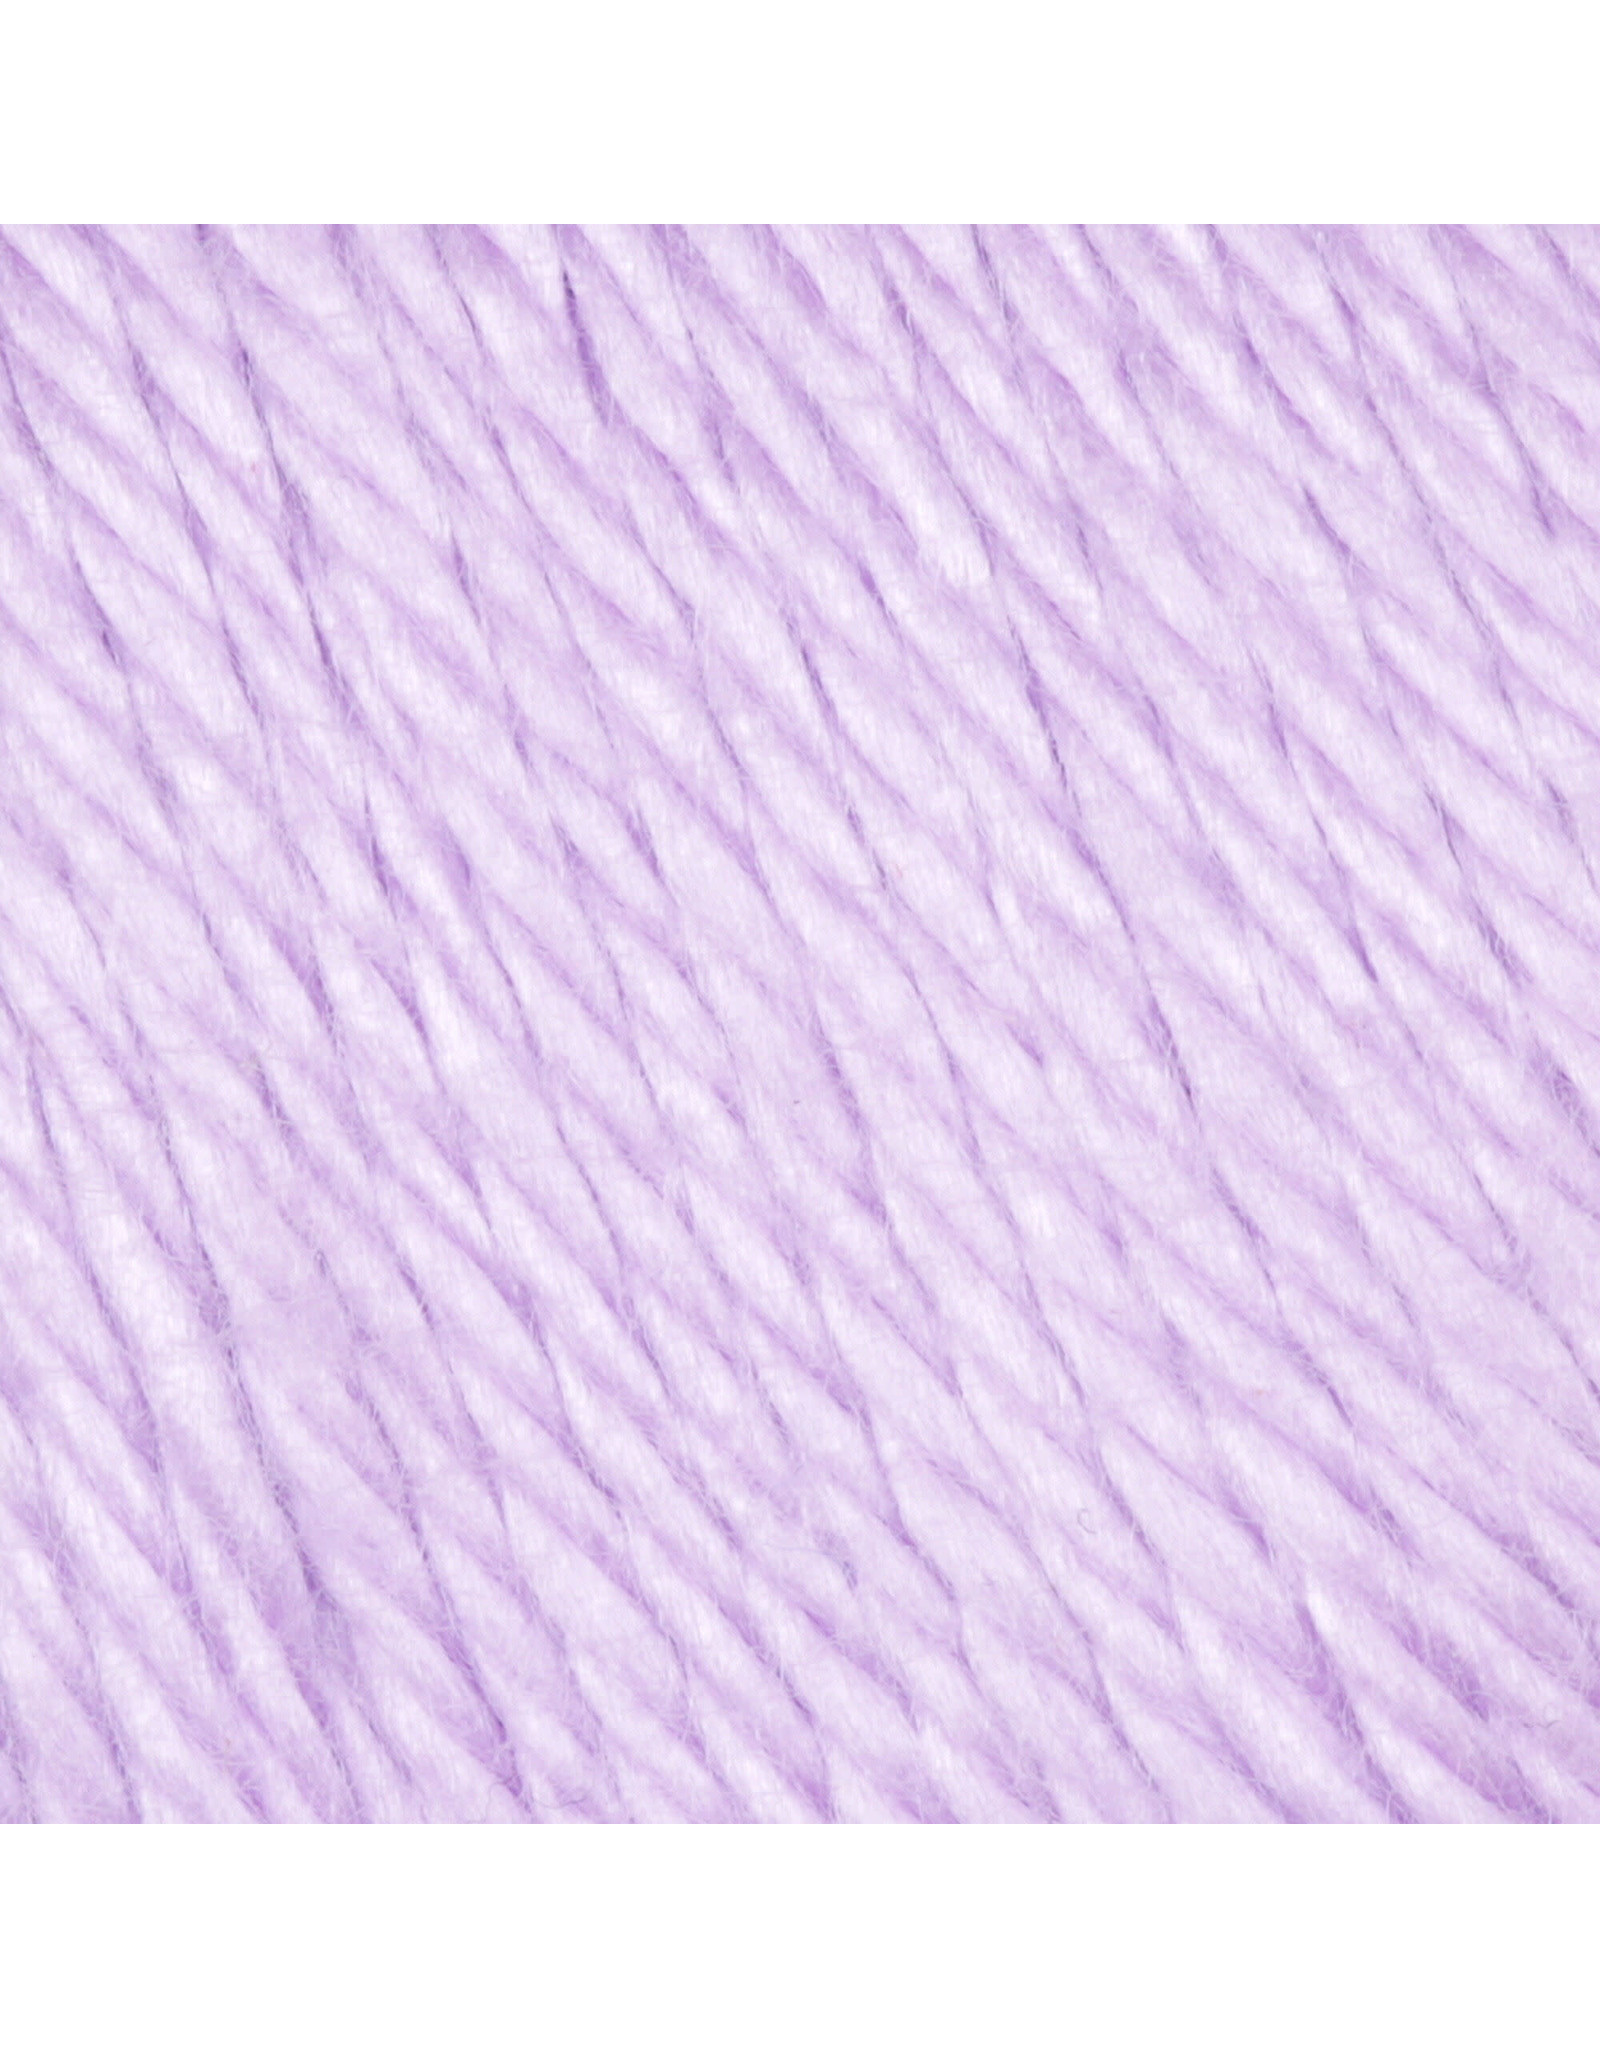 Orchid - Simply Soft - Caron